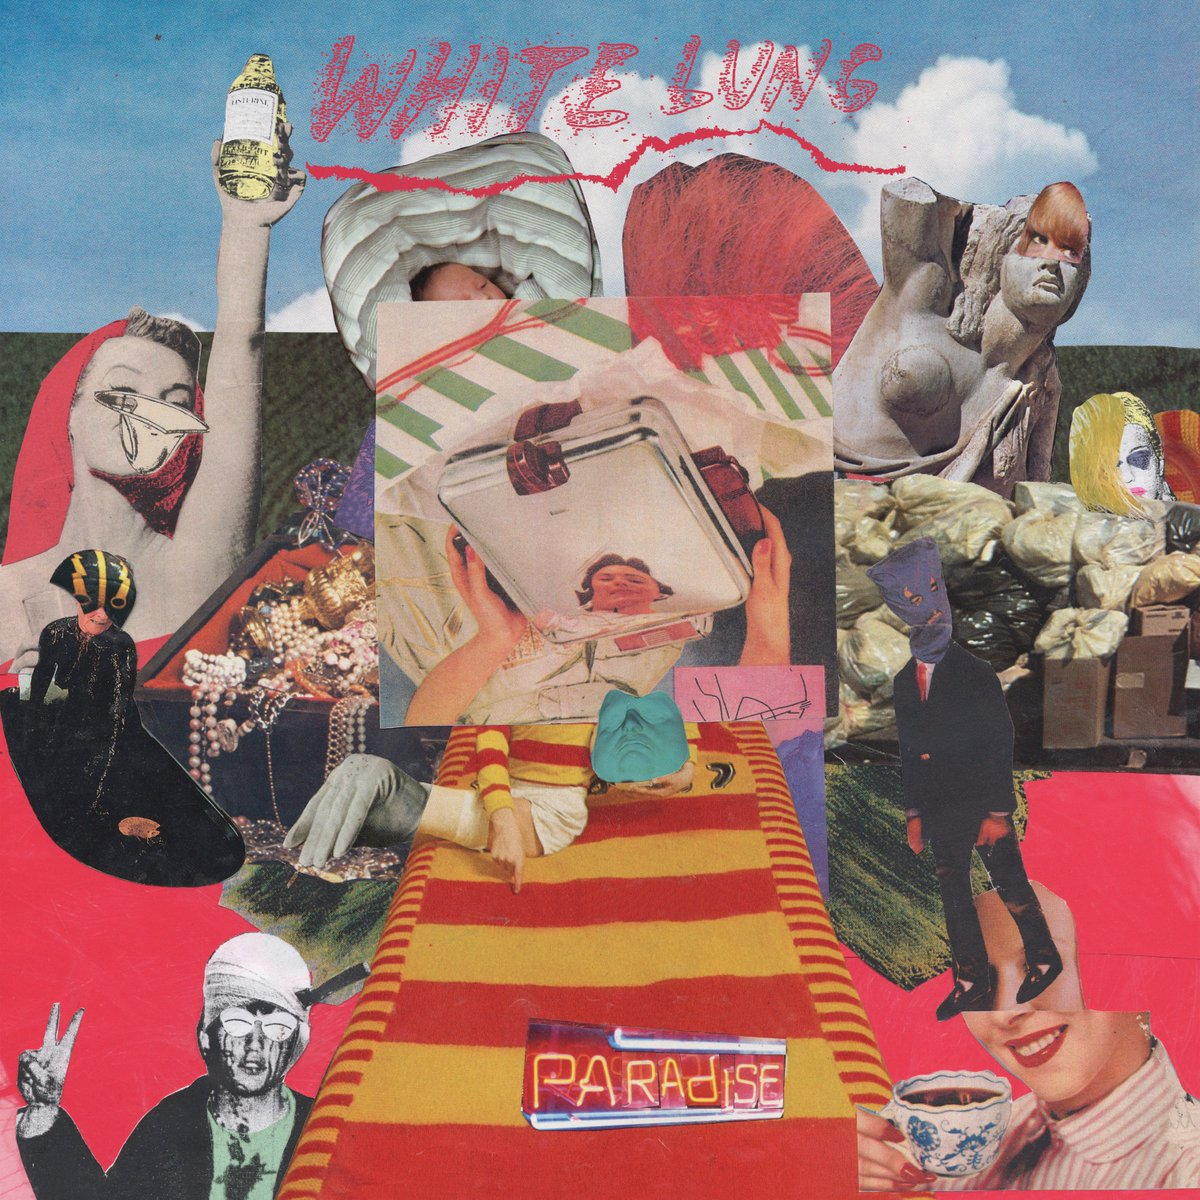 'Paradise' by White Lung, album review by Gregory Adams.